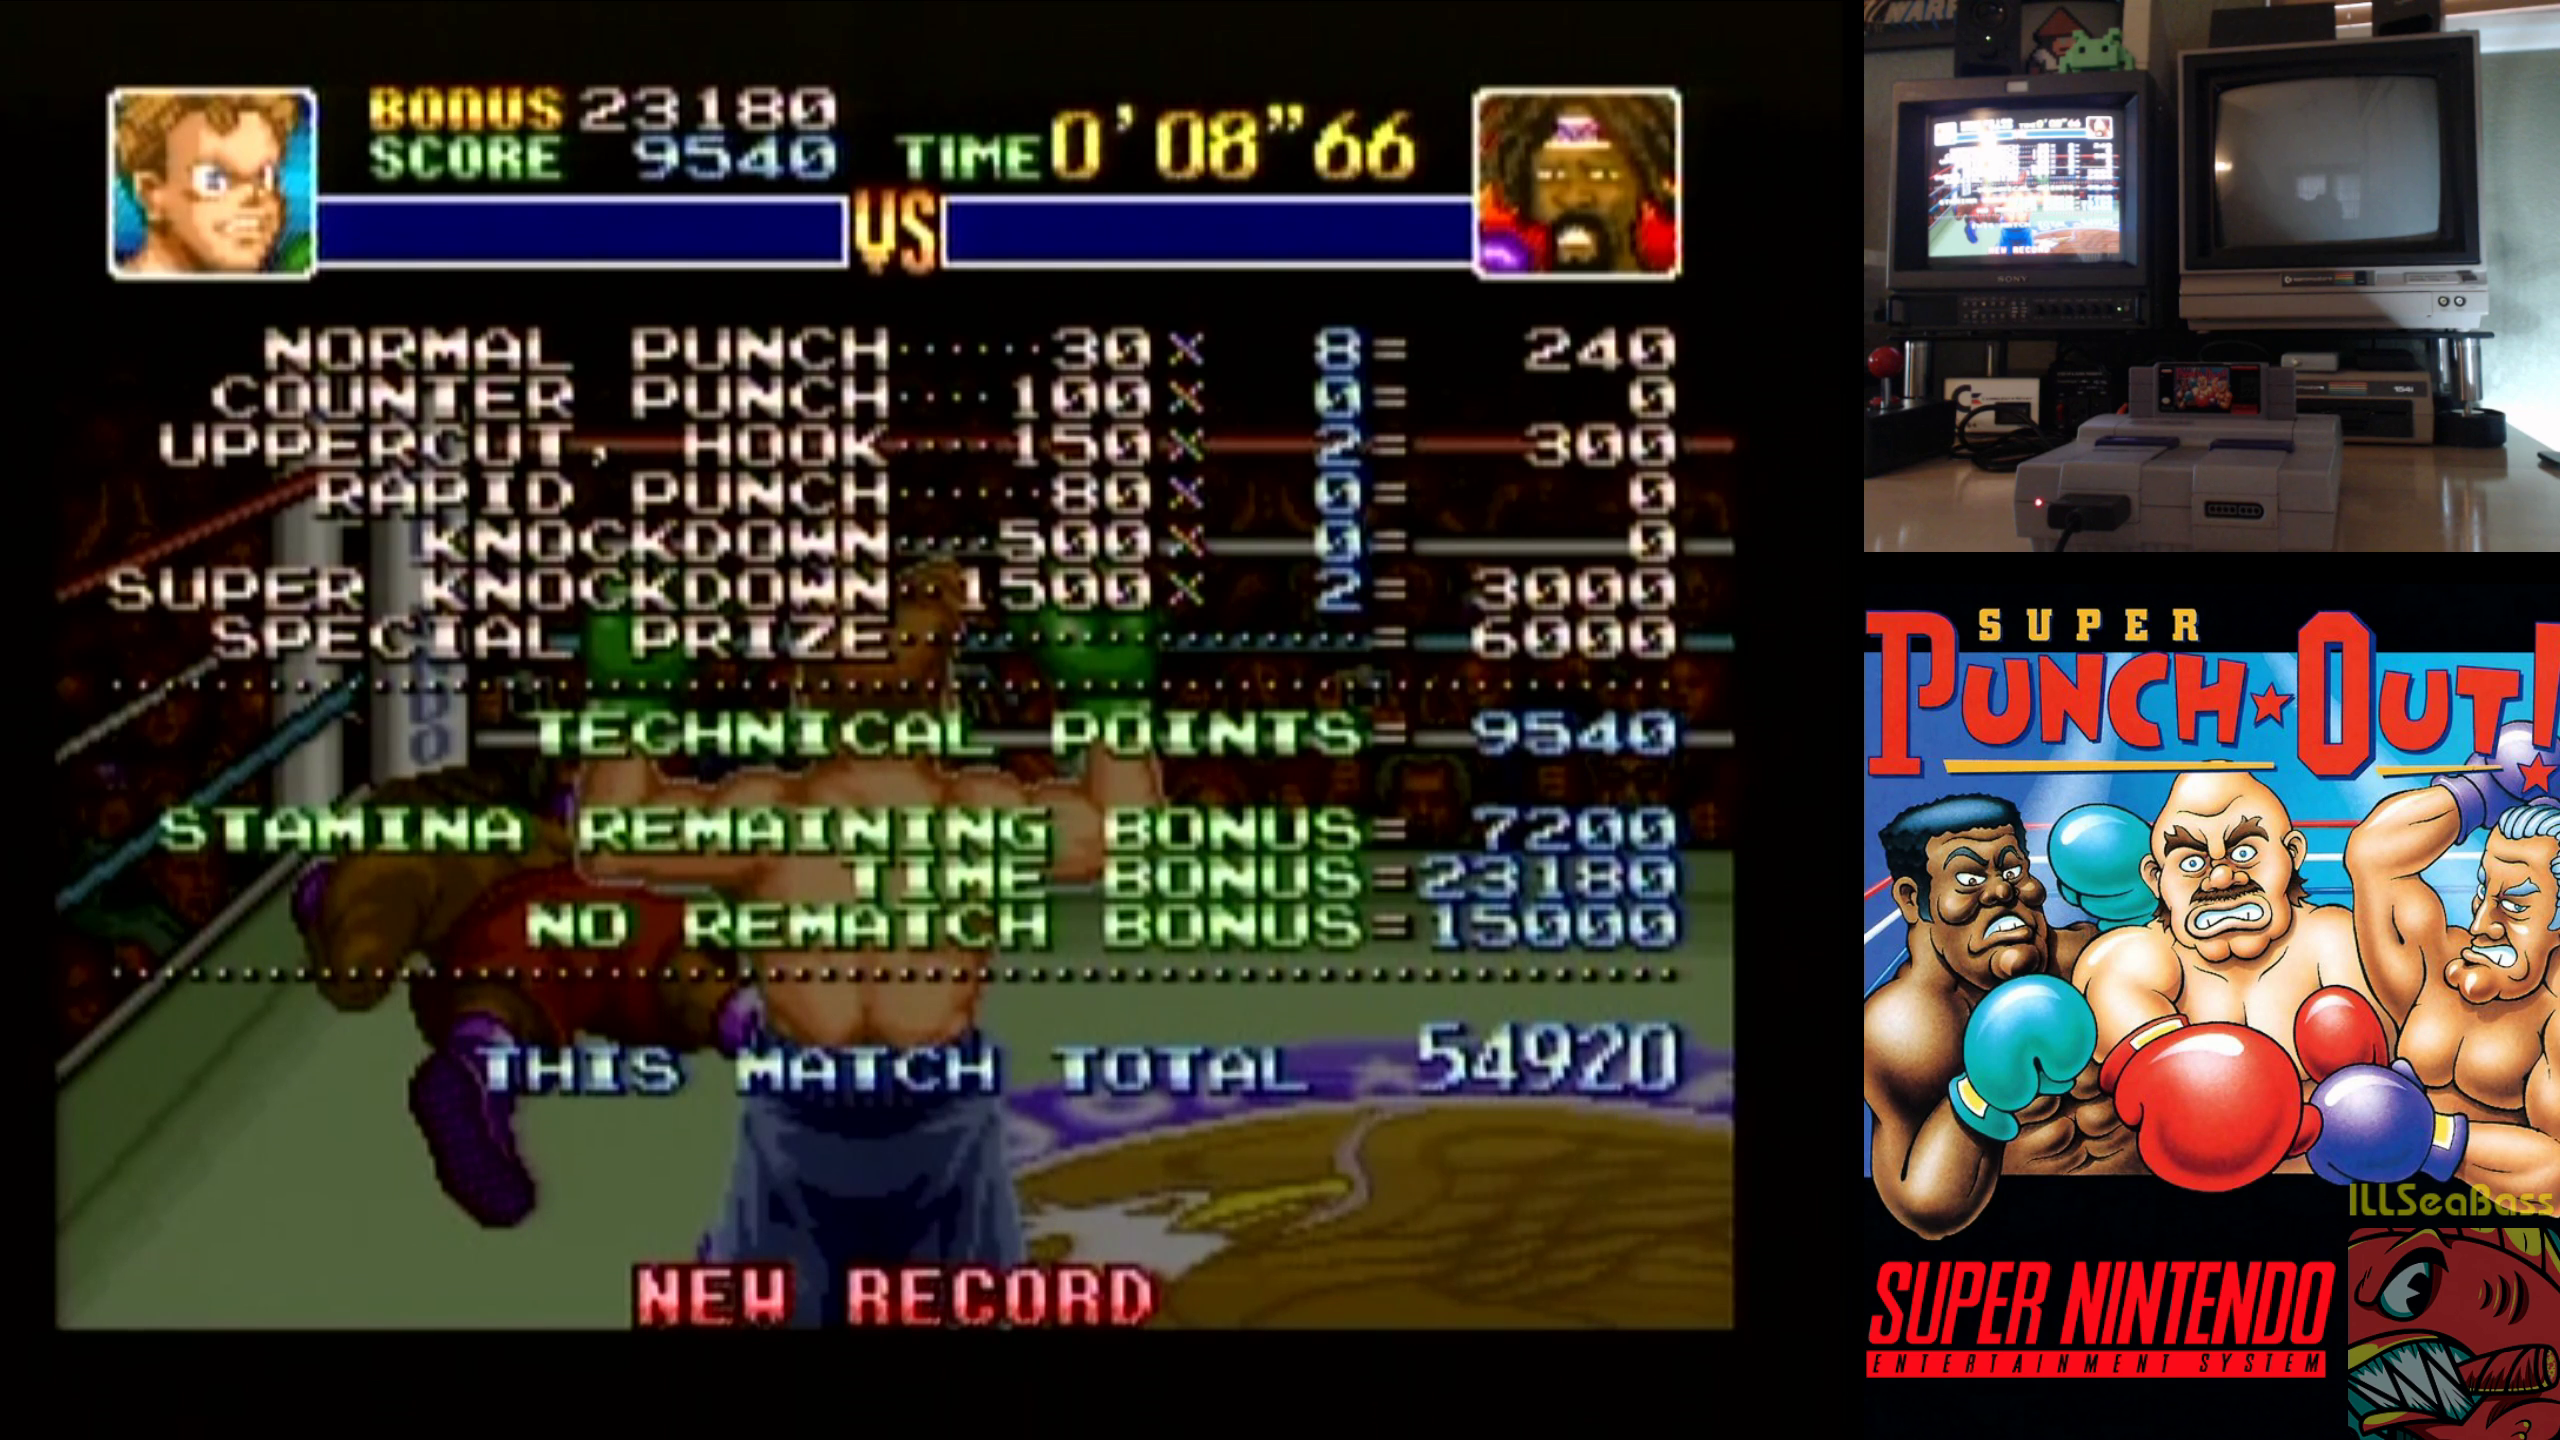 ILLSeaBass: Super Punch-Out!! [Bob Charlie] (SNES/Super Famicom) 54,920 points on 2018-11-17 12:38:37